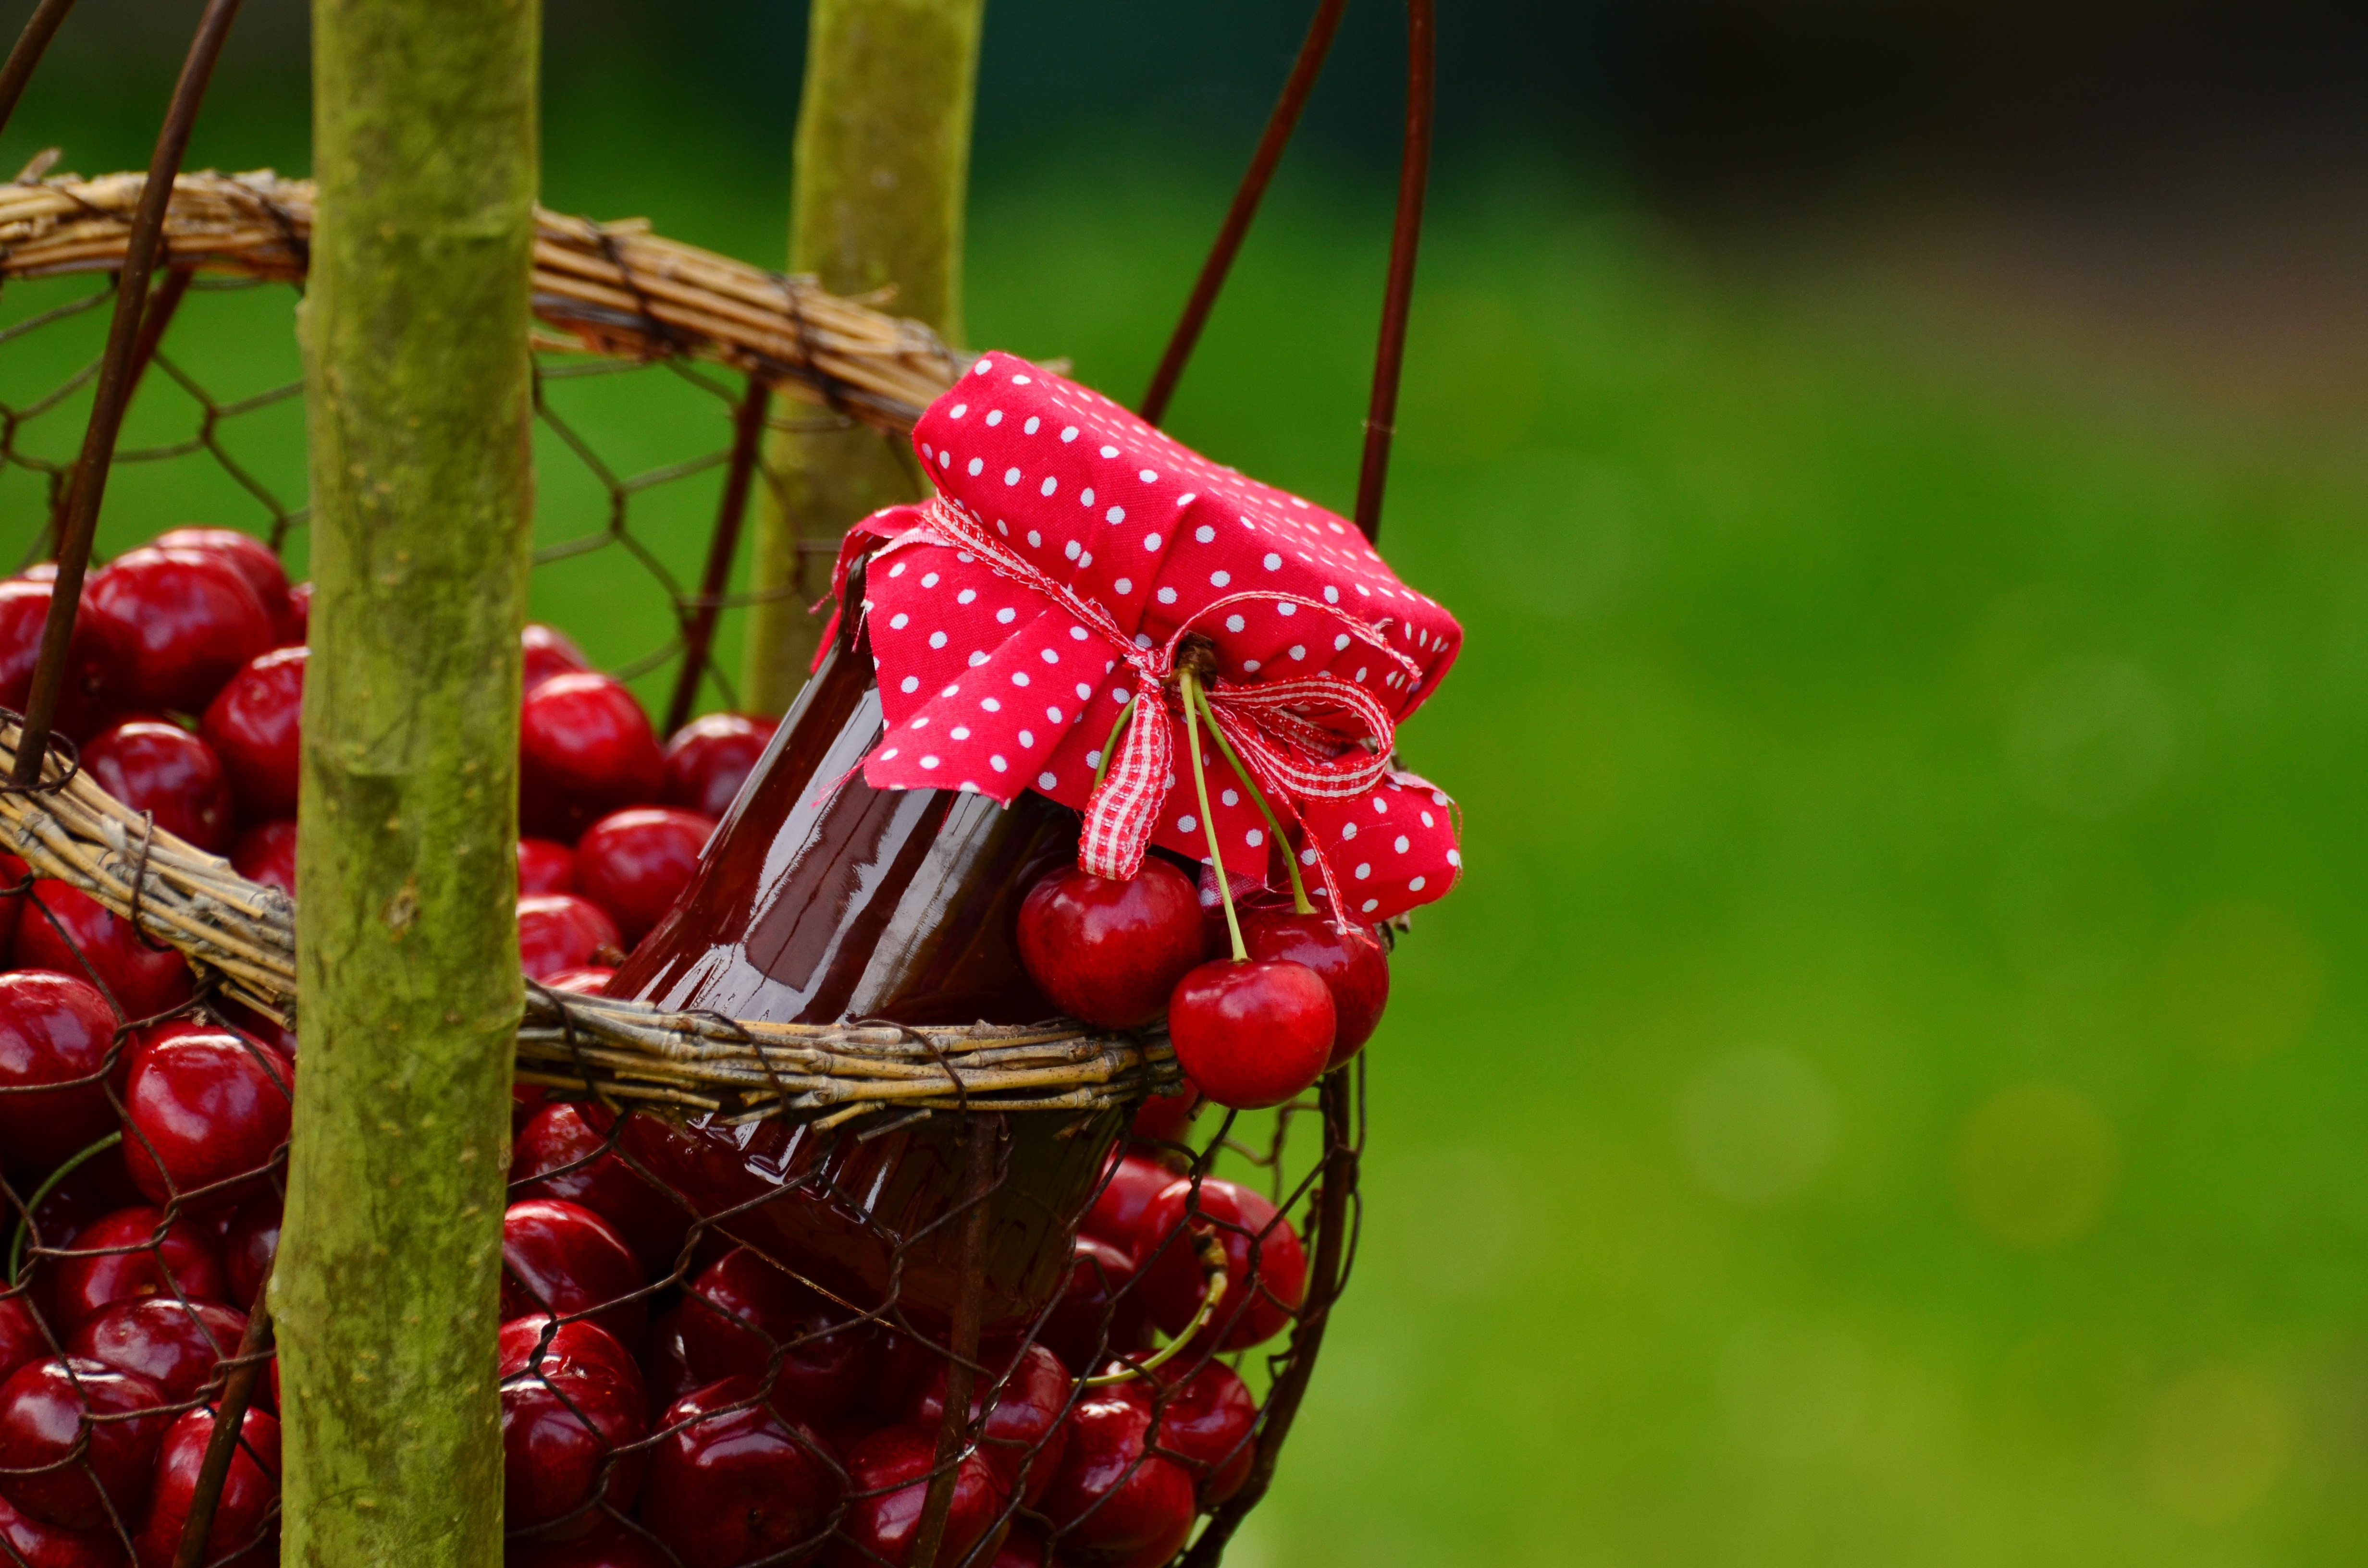 basket of fresh cherries and jar of jam